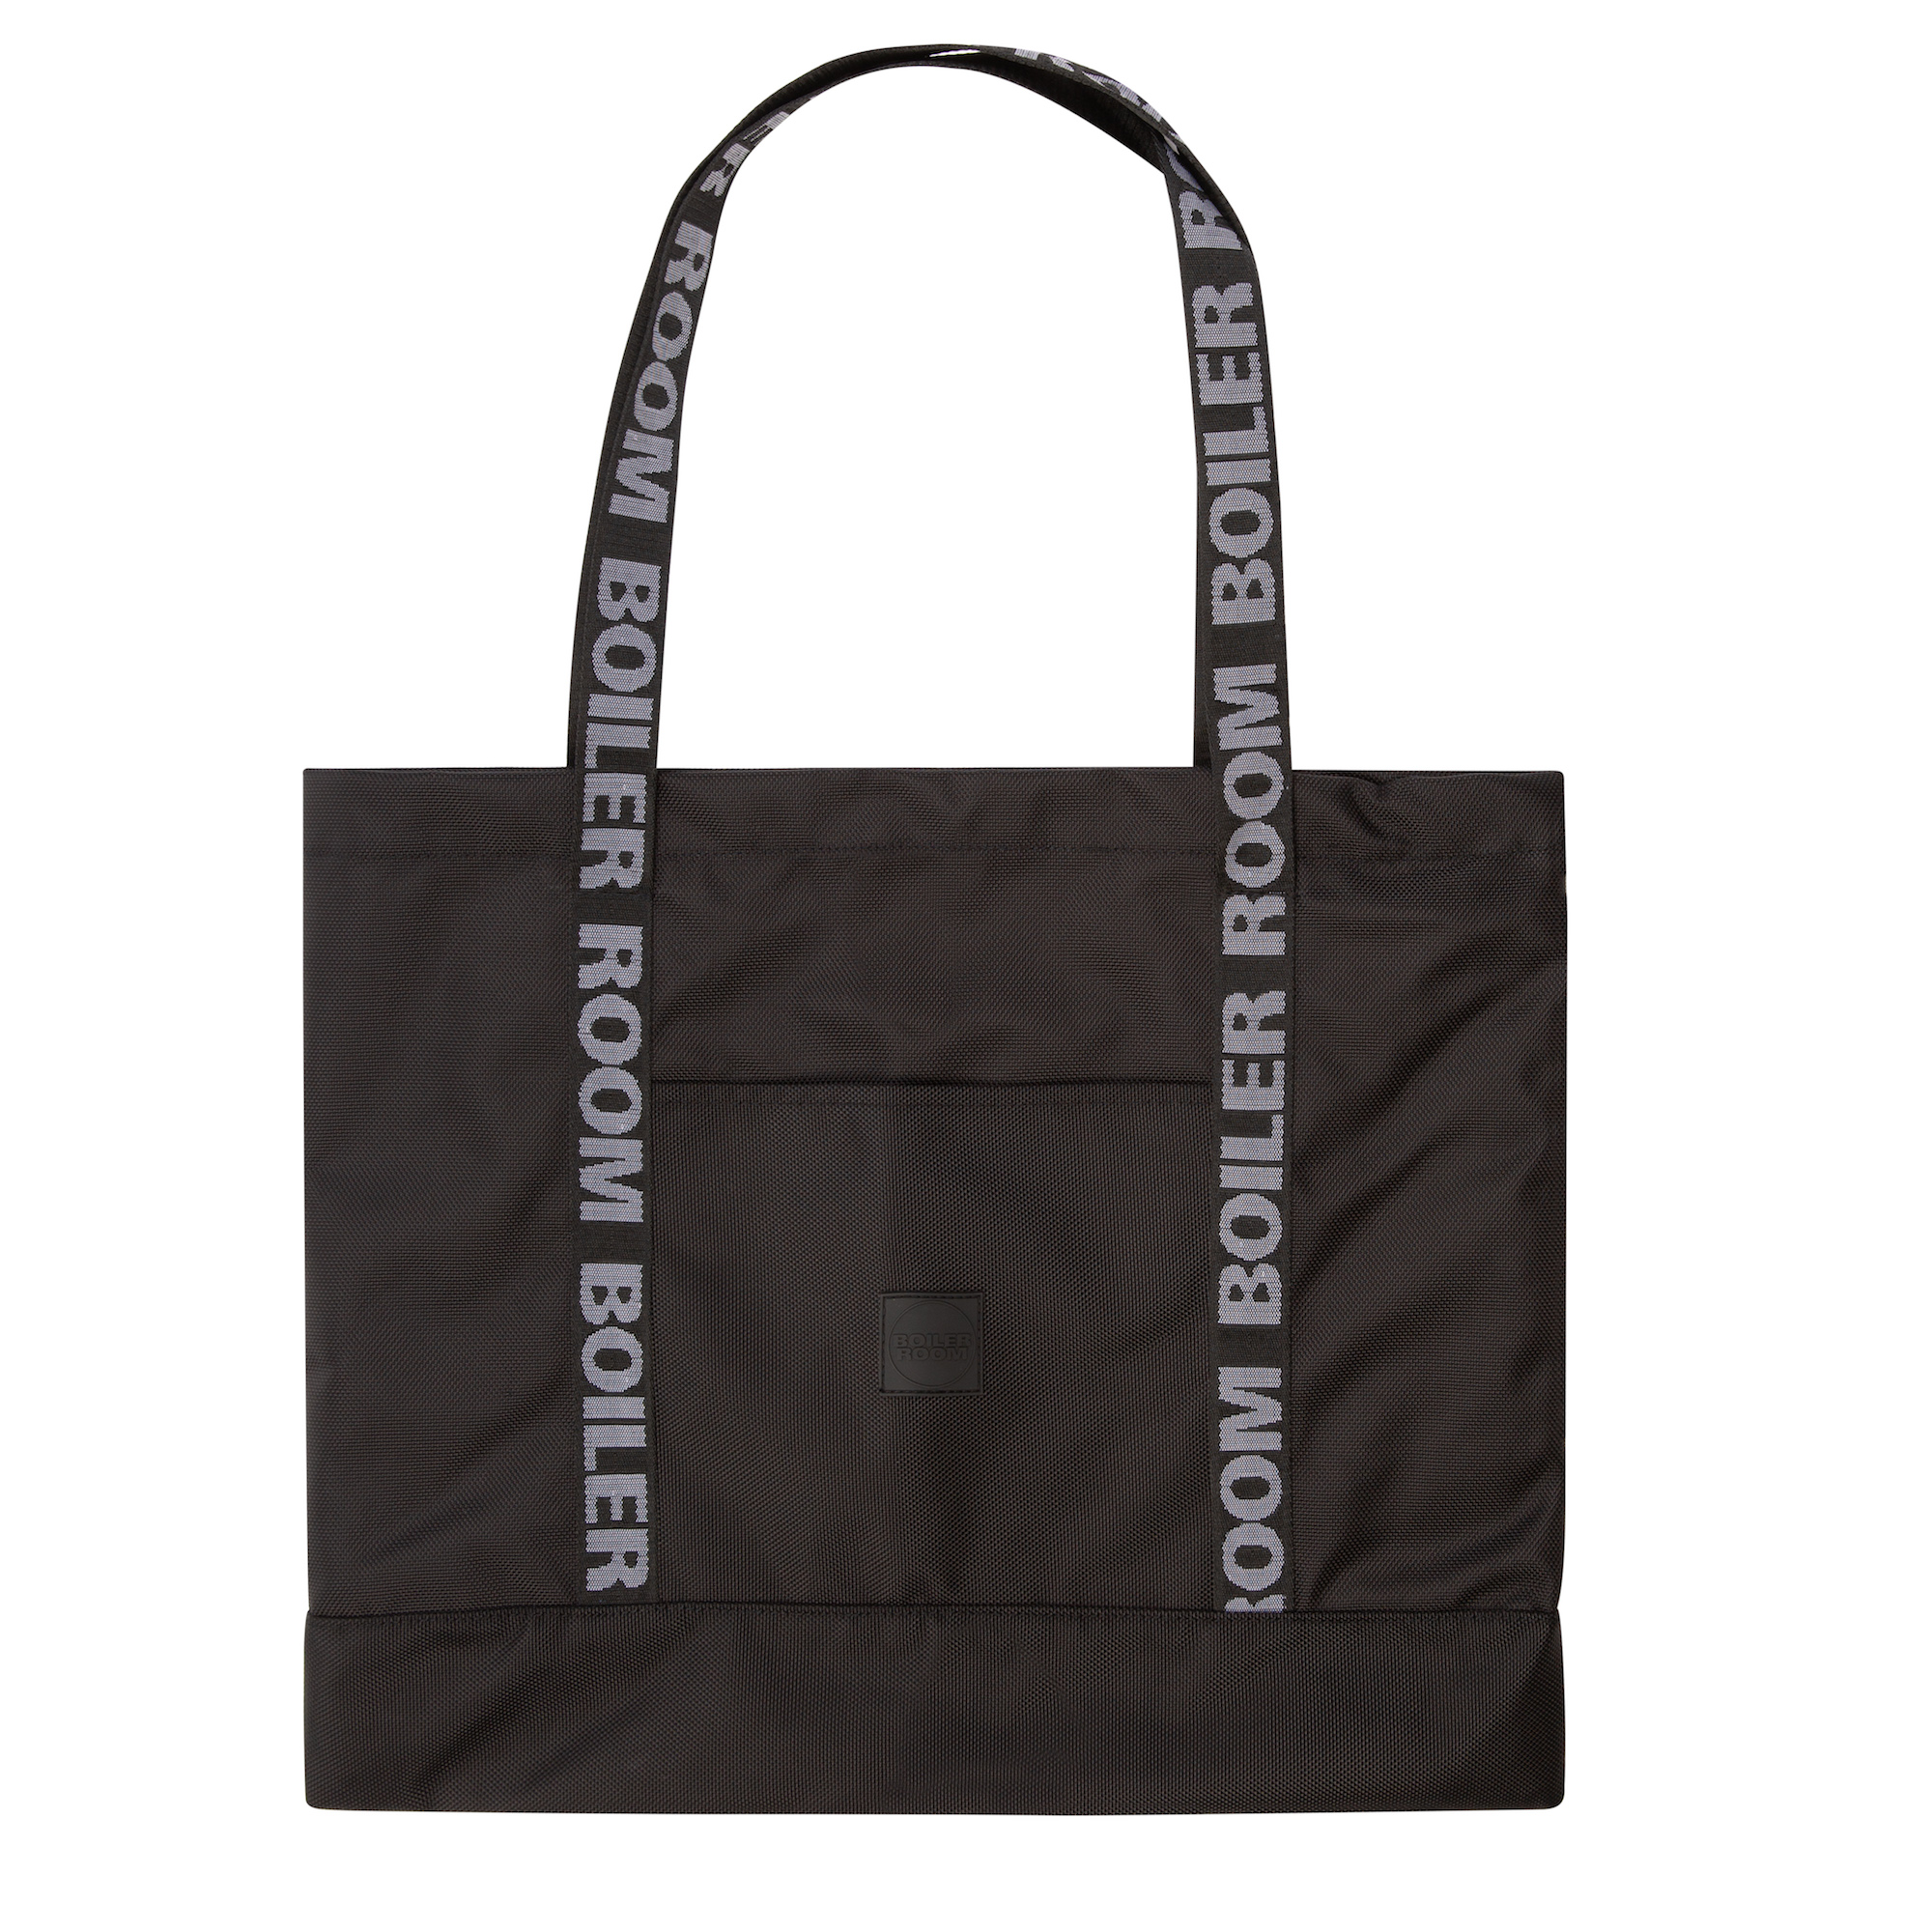 Boiler Room RTW collection tote bag